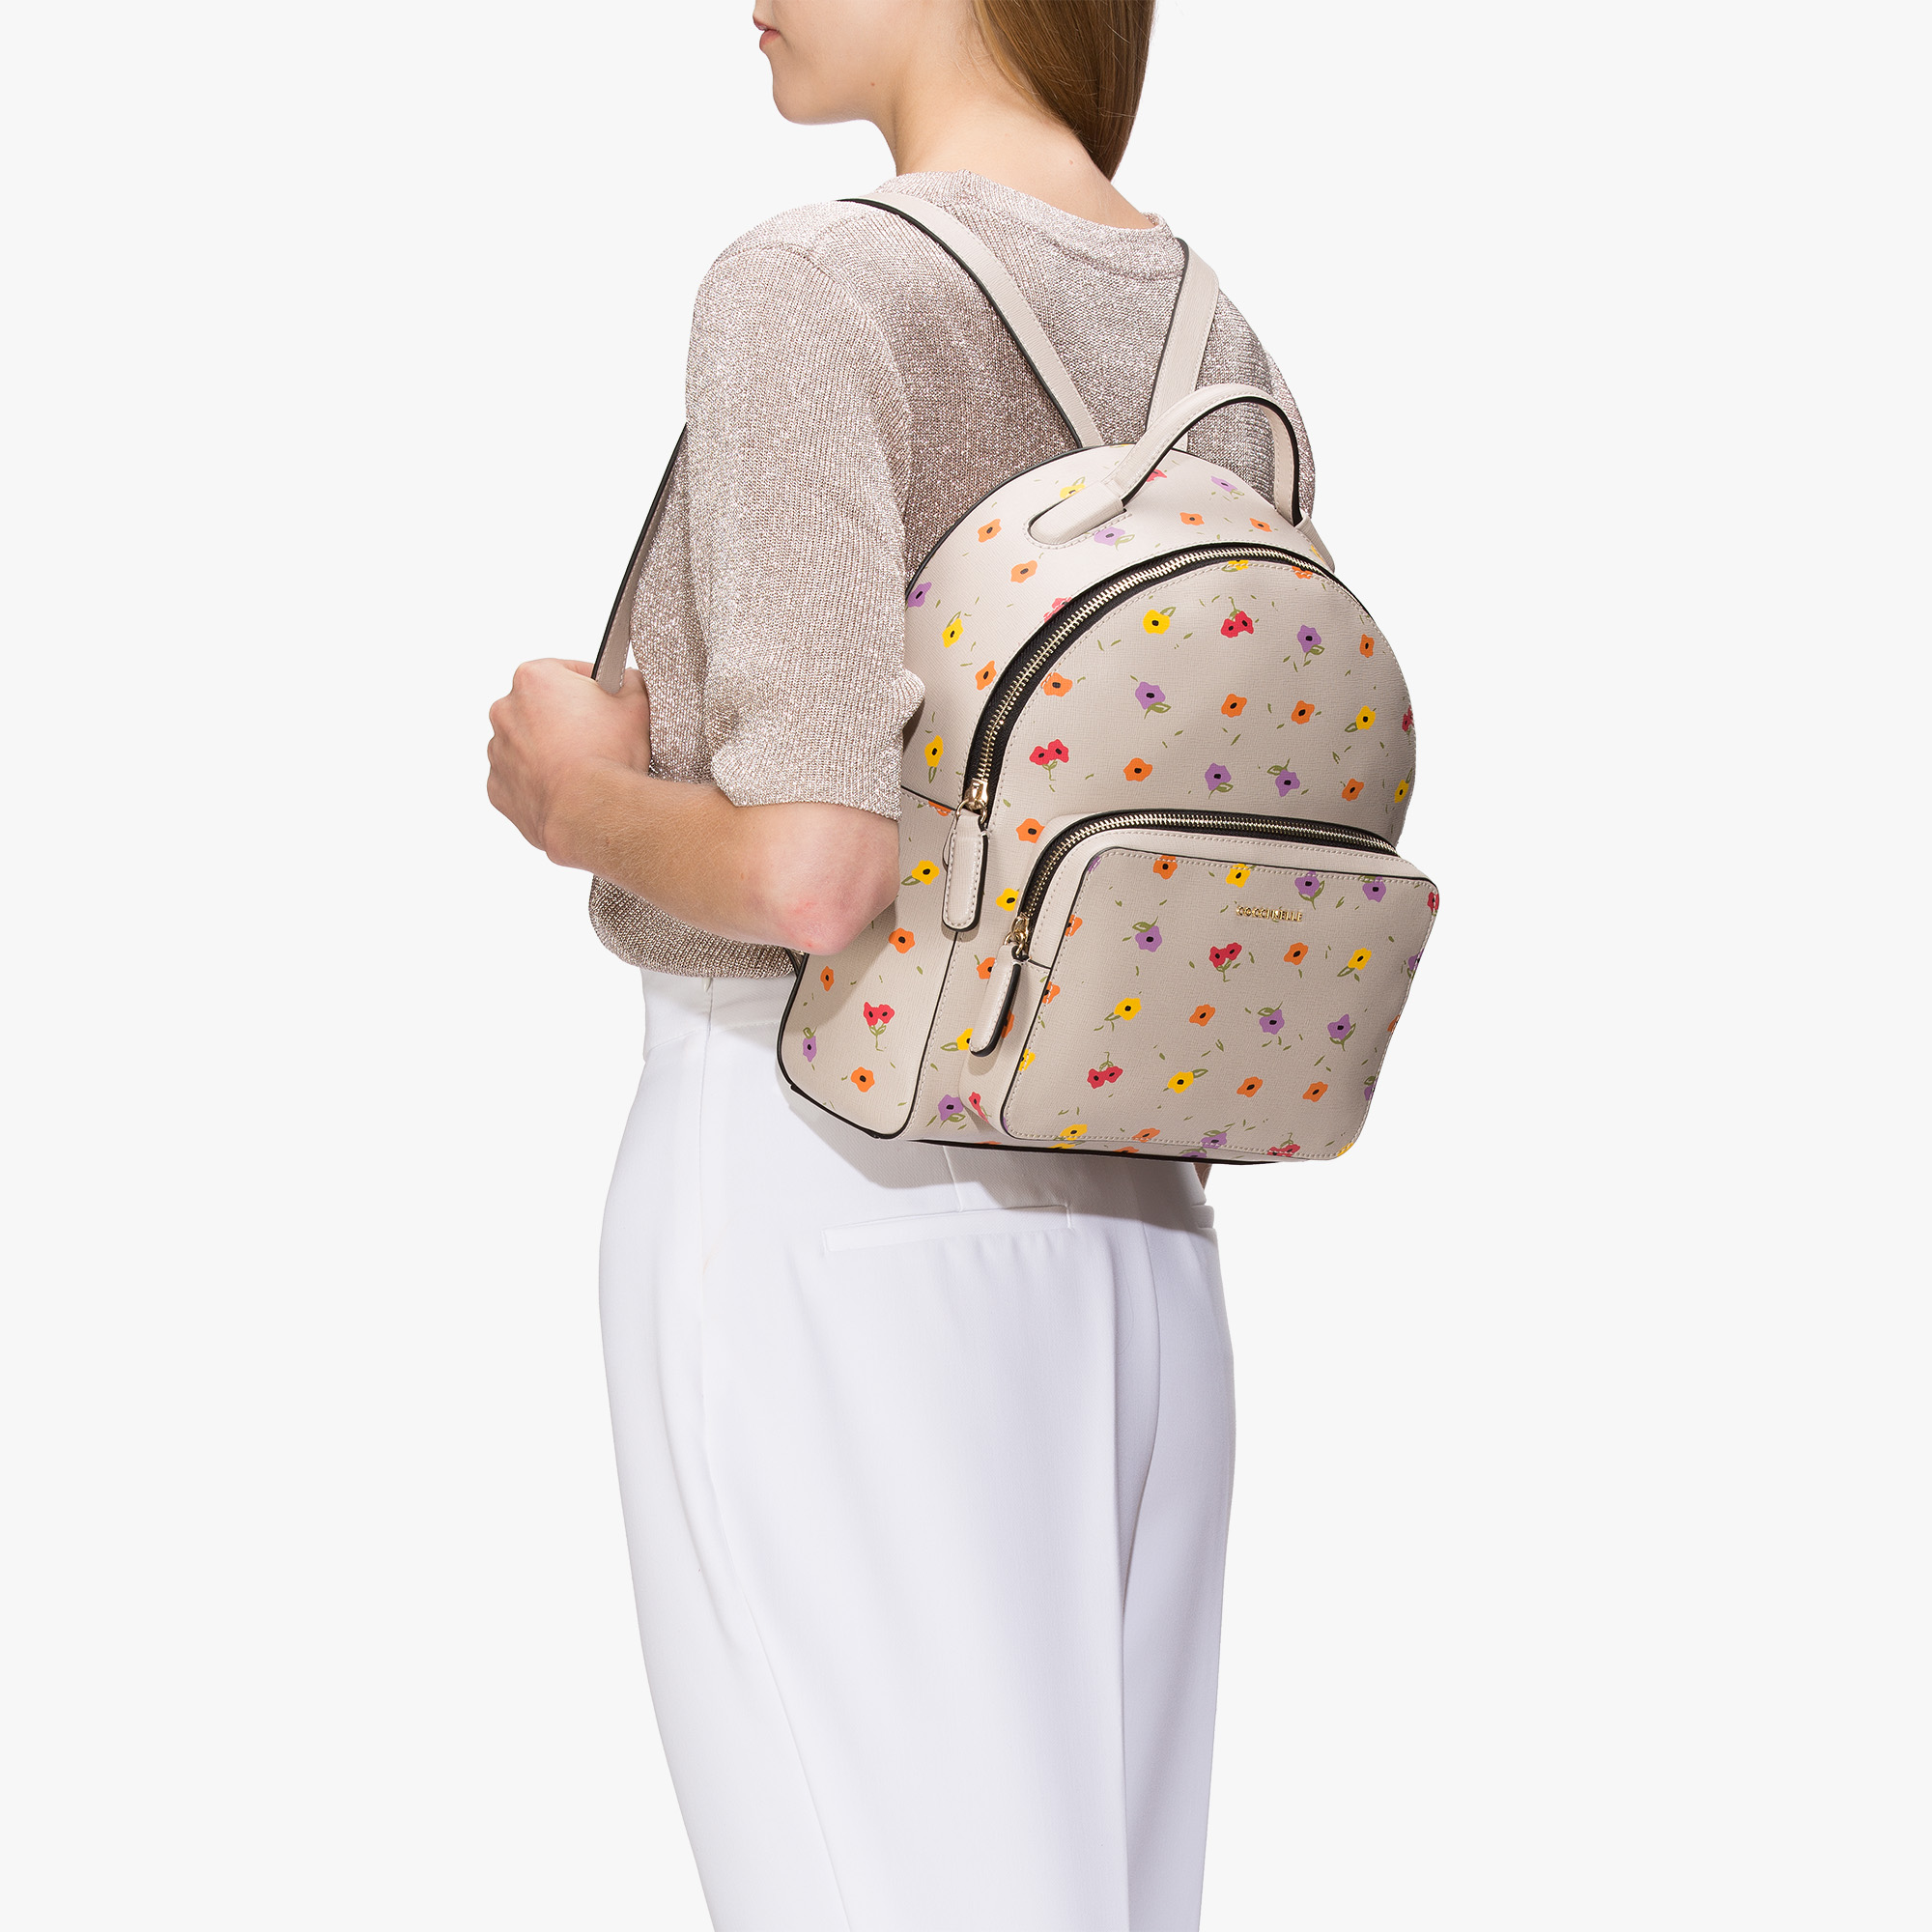 Coccinelle Clementine saffiano leather backpack